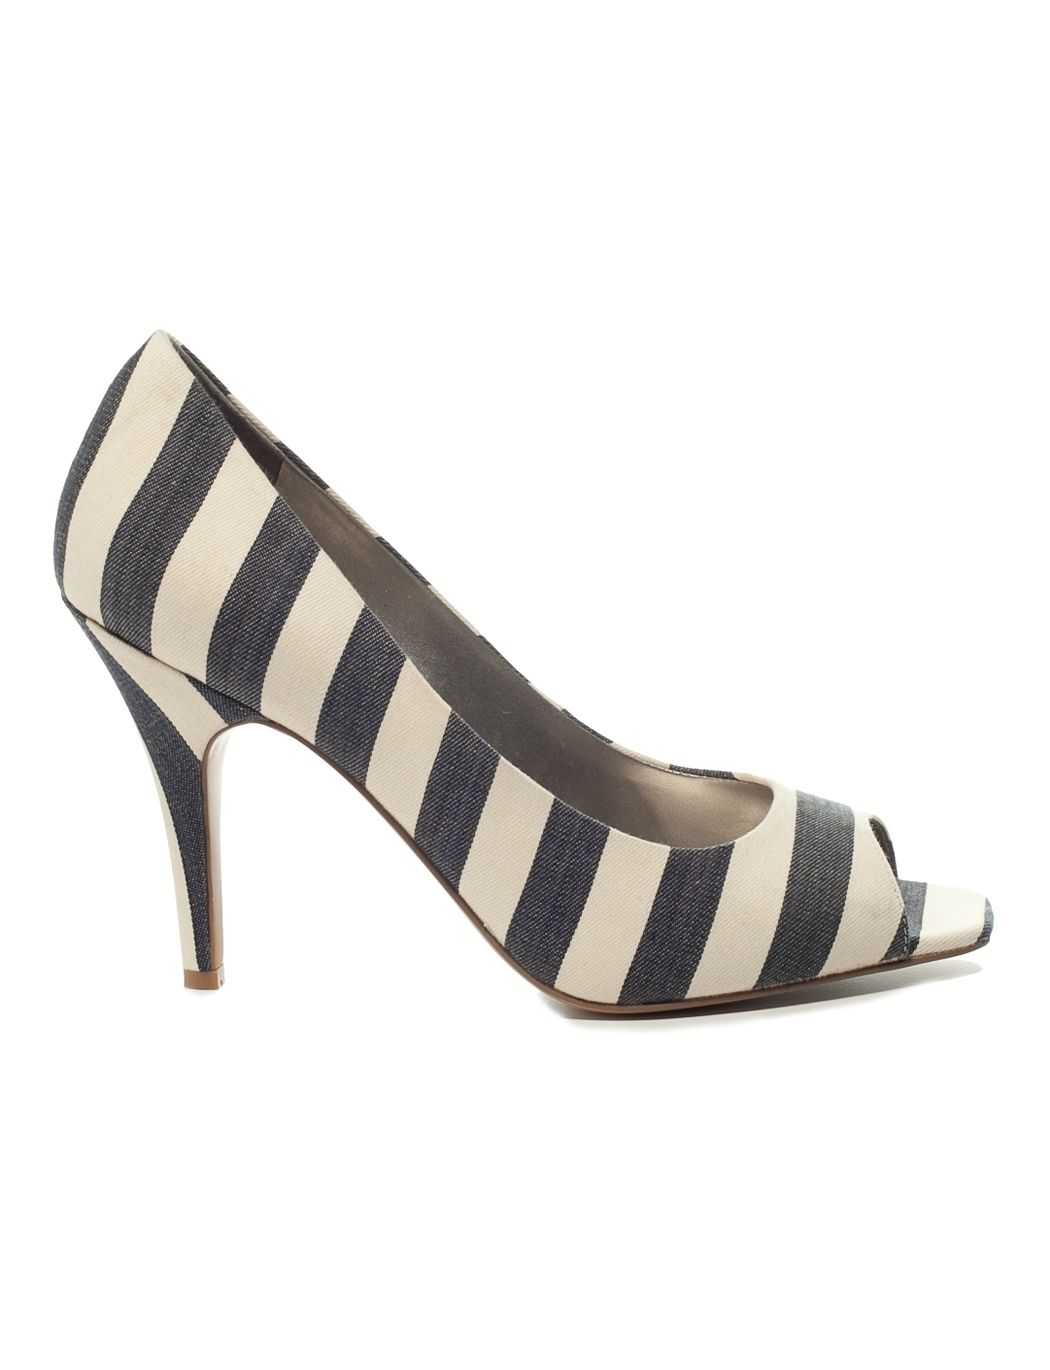 c9bc1f7af96 The Limited  Canvas Peeptoe Pumps Sporty meets chic in this canvas pump. An  elegant